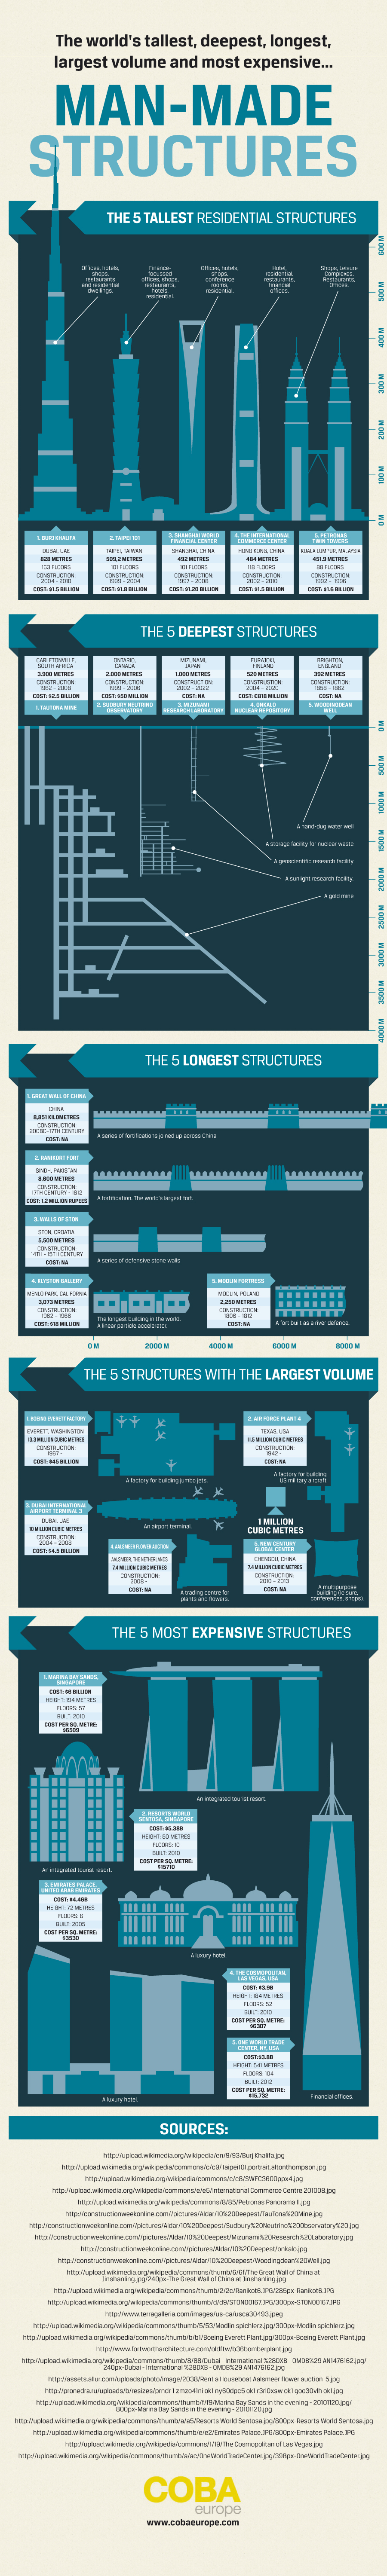 Manmade structures infographic V5